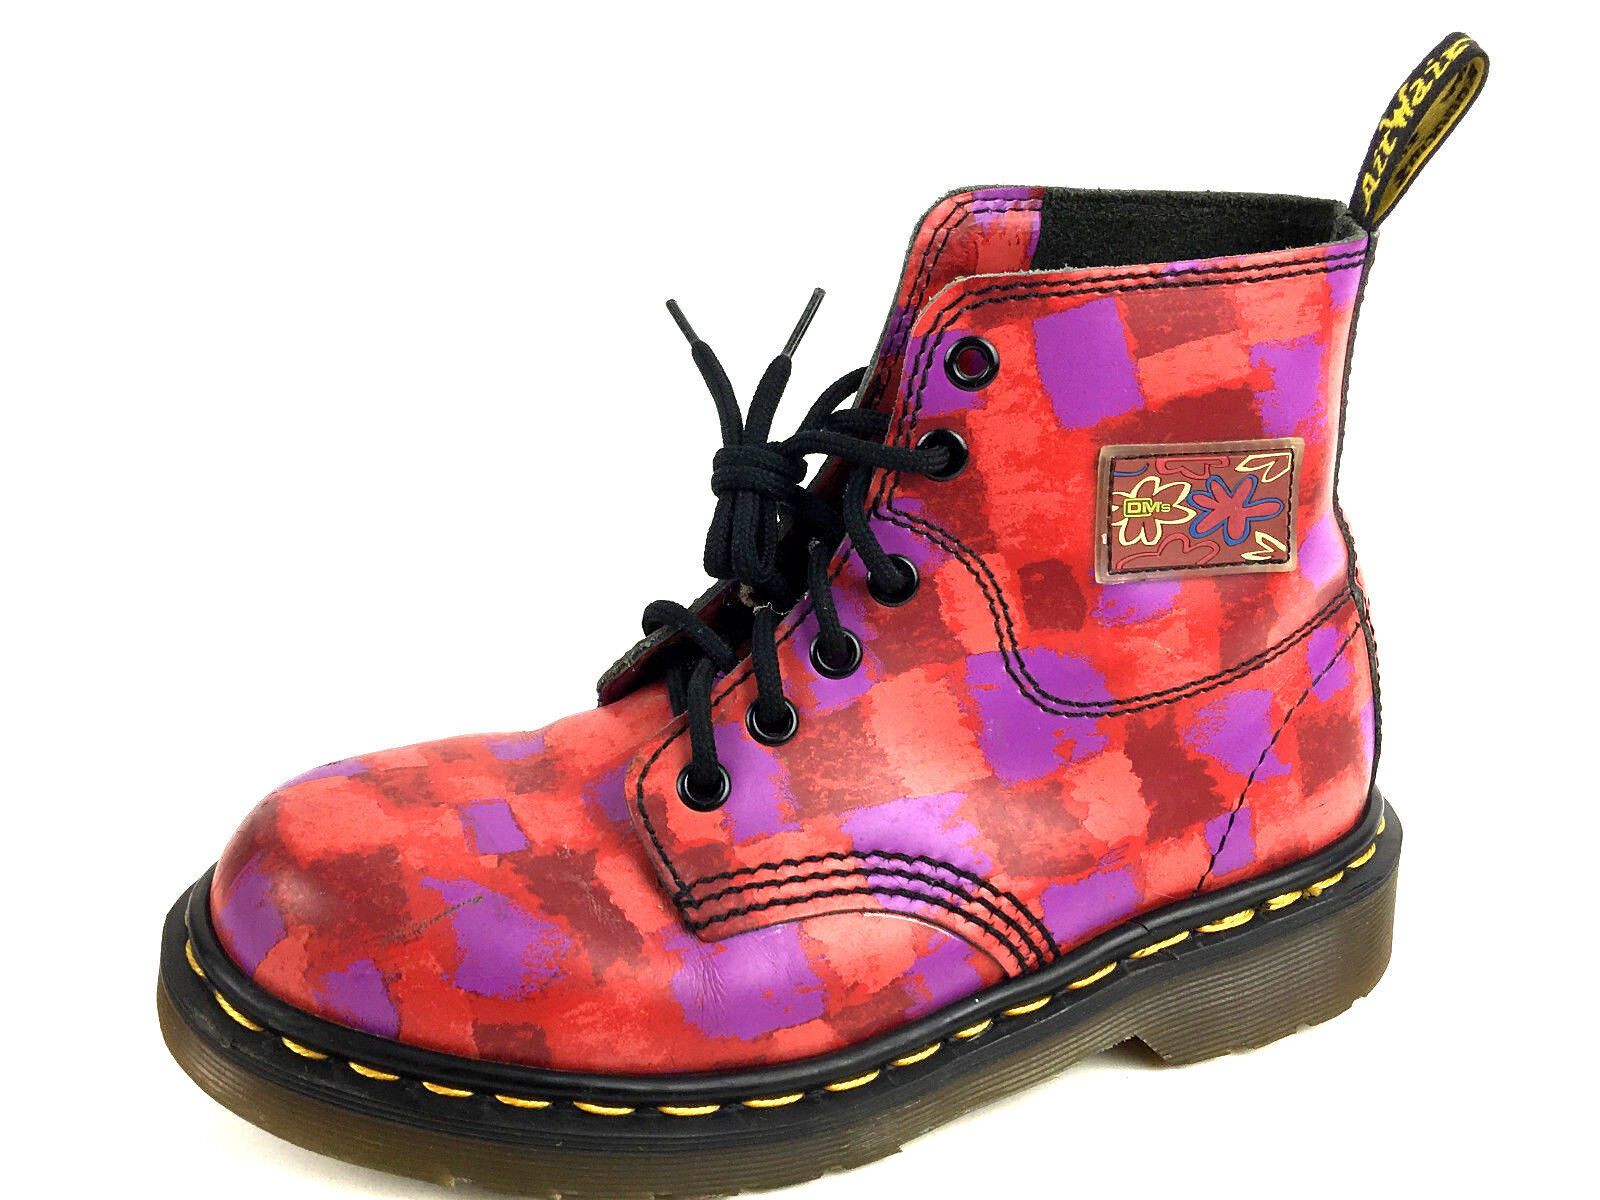 Dr Martens Made in England Multi Colour Boots Size Women's US.5 UK.3 EU.35-36